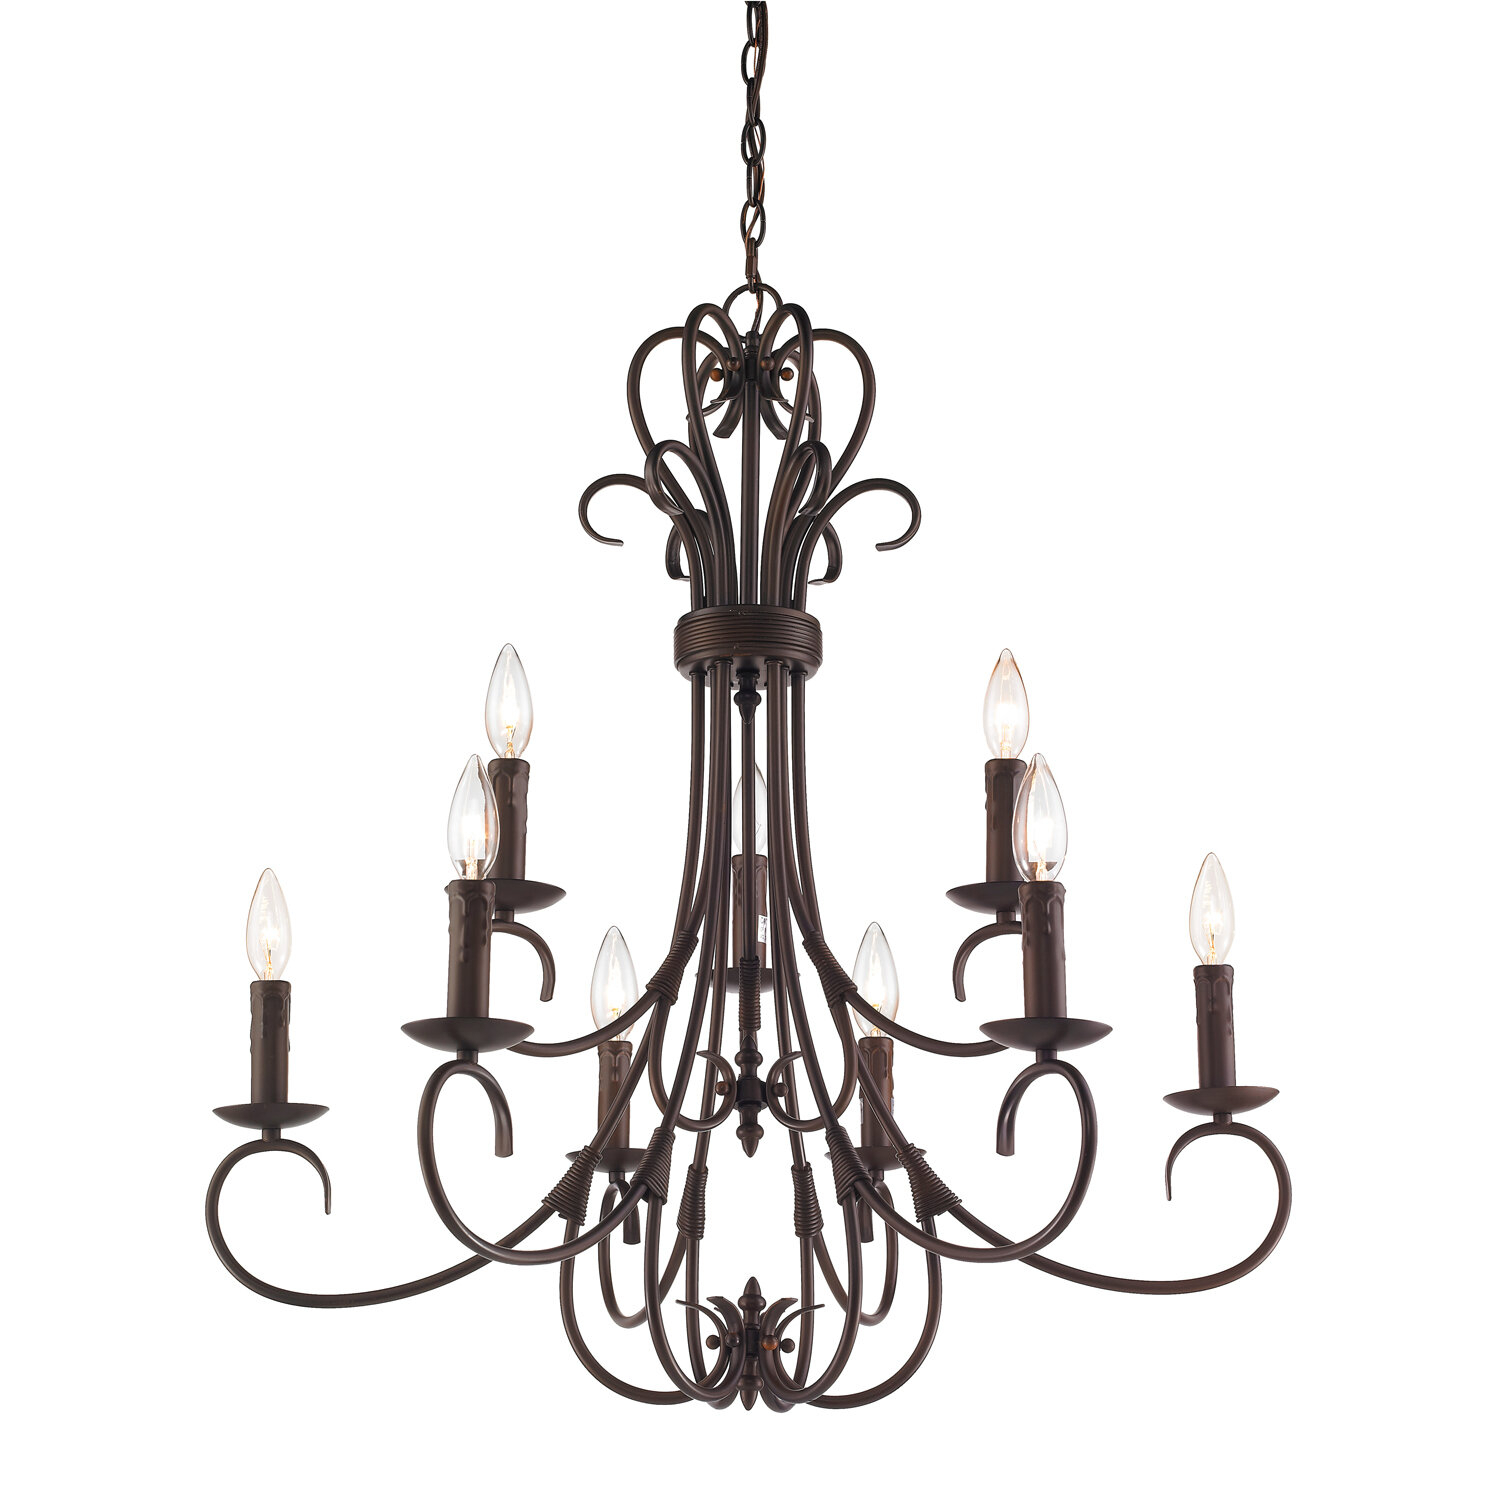 Gaines 9 Light Candle Style Chandelier With Gaines 9 Light Candle Style Chandeliers (View 2 of 30)